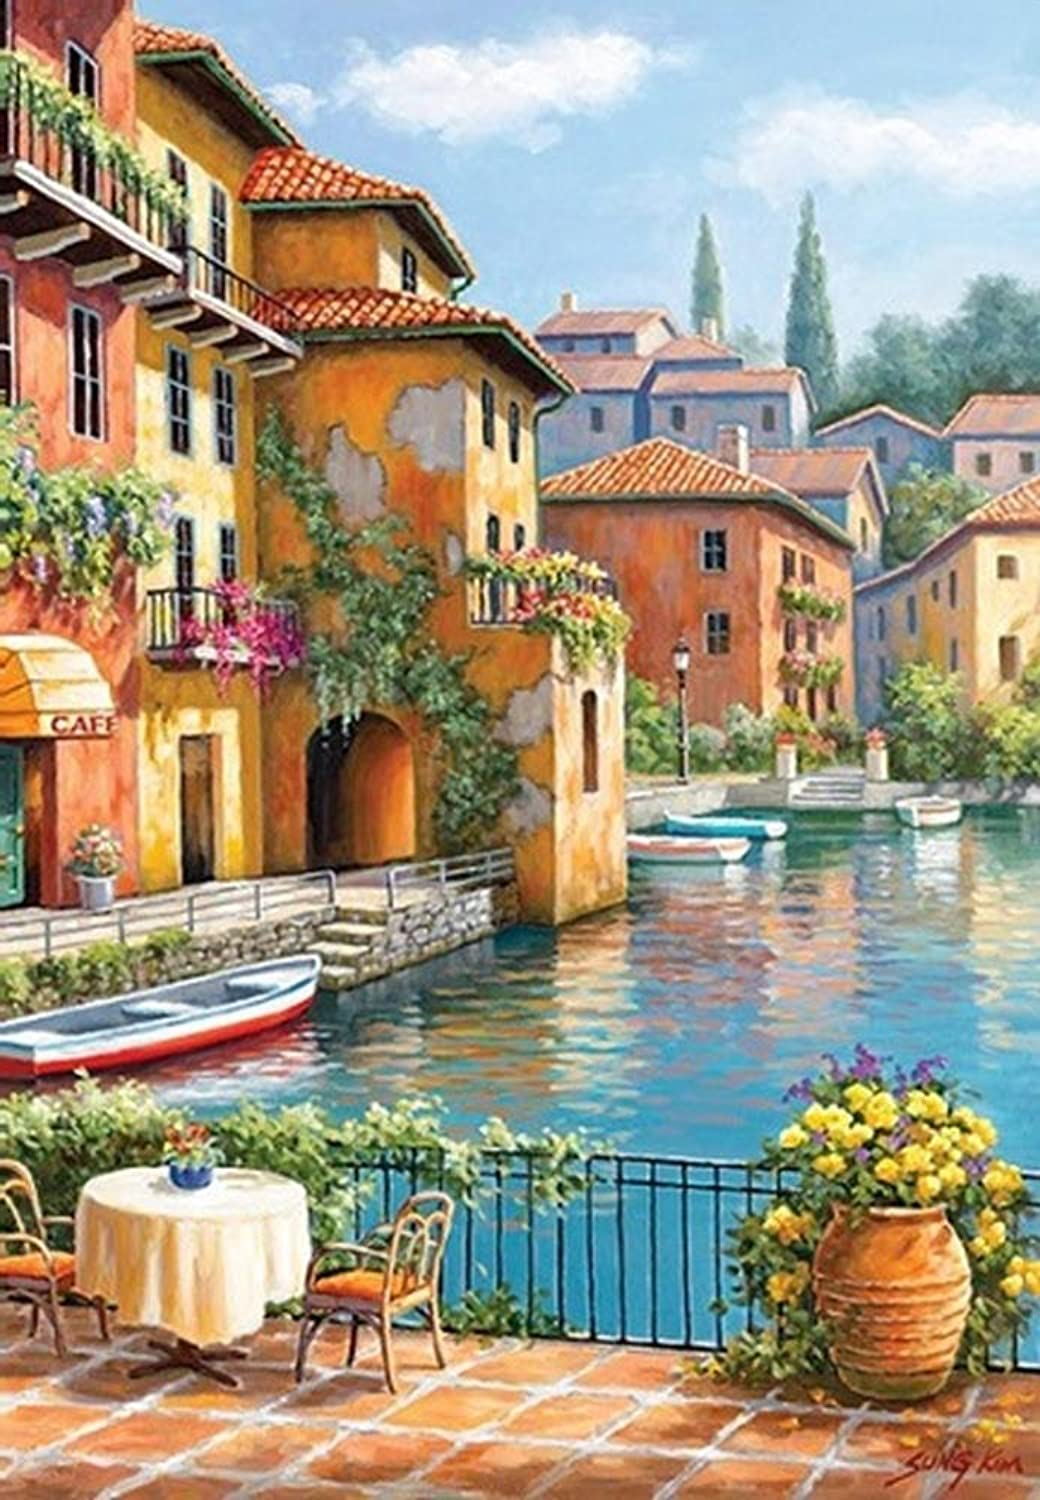 Perre Group 260 Piece Puzzle Cafe at The Canal